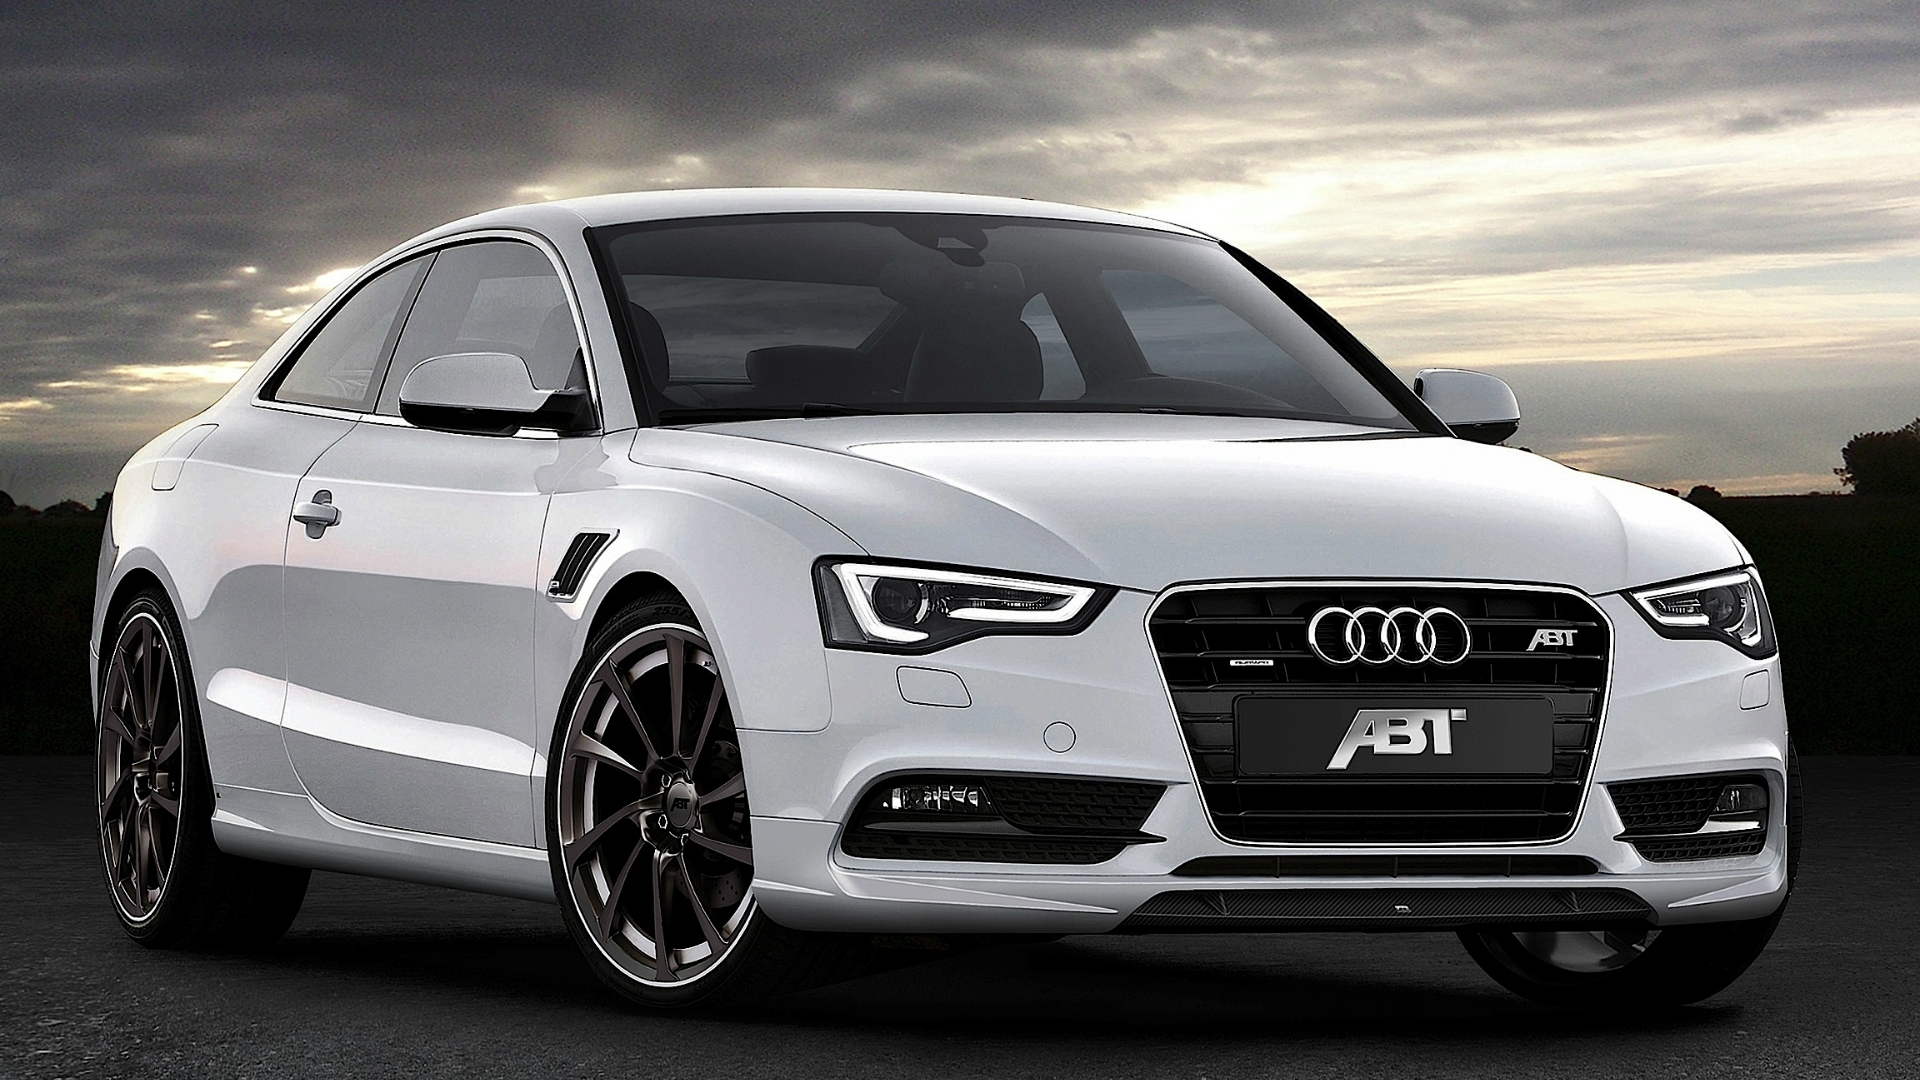 White Audi Front Look 197.4 Kb